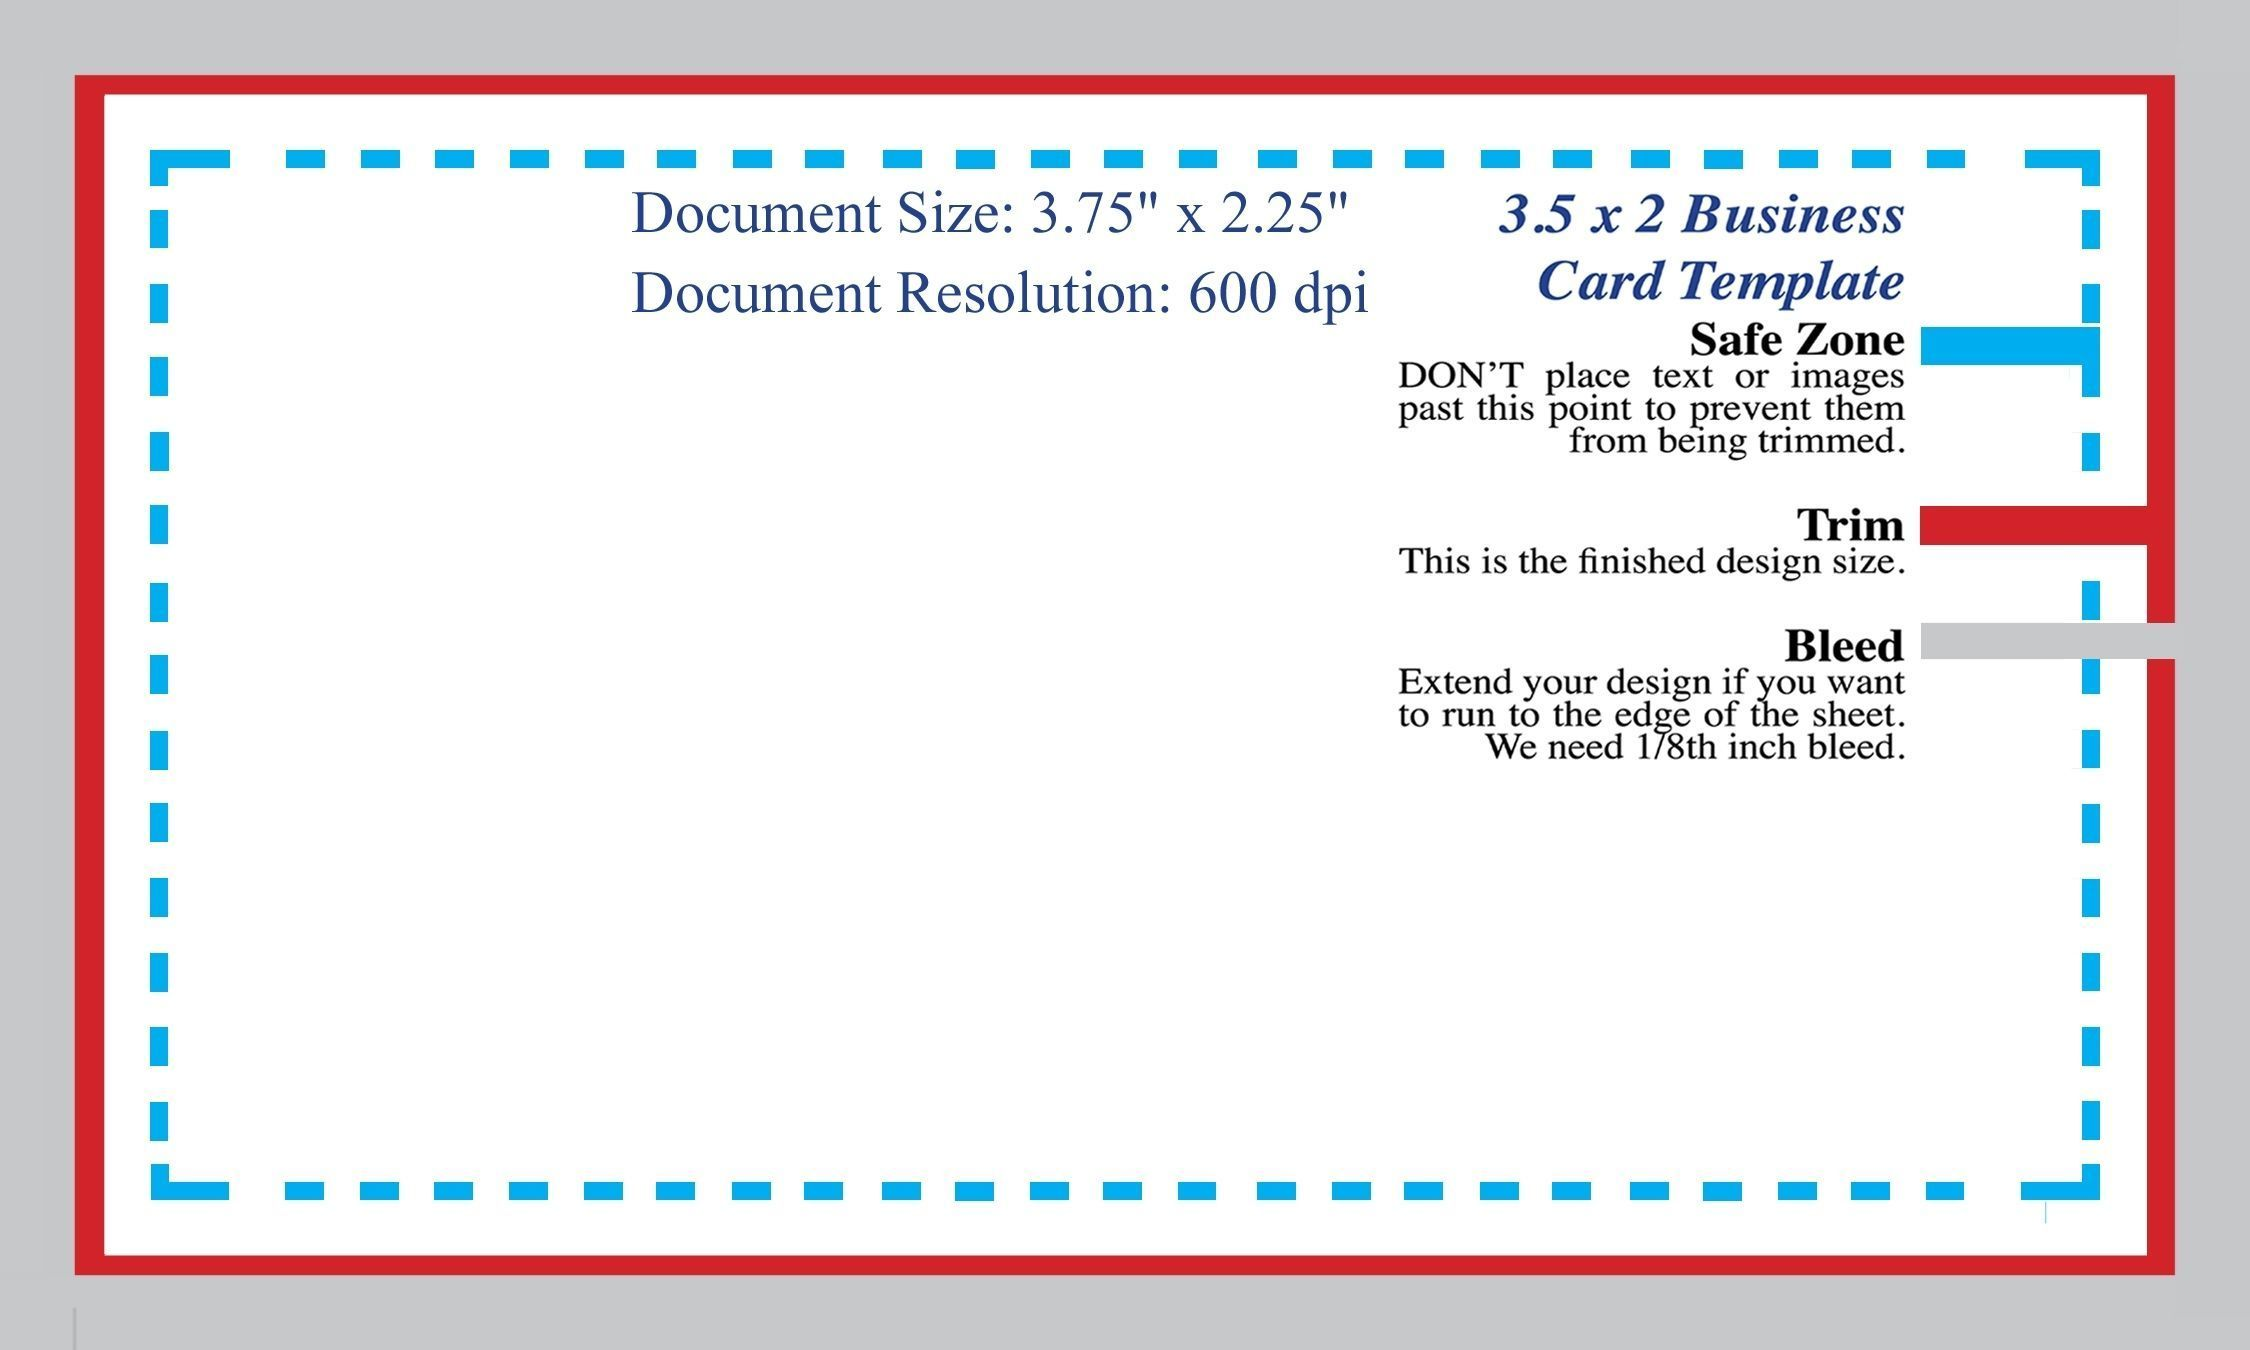 Standard Business Card Blank Template Photoshop Template Intended